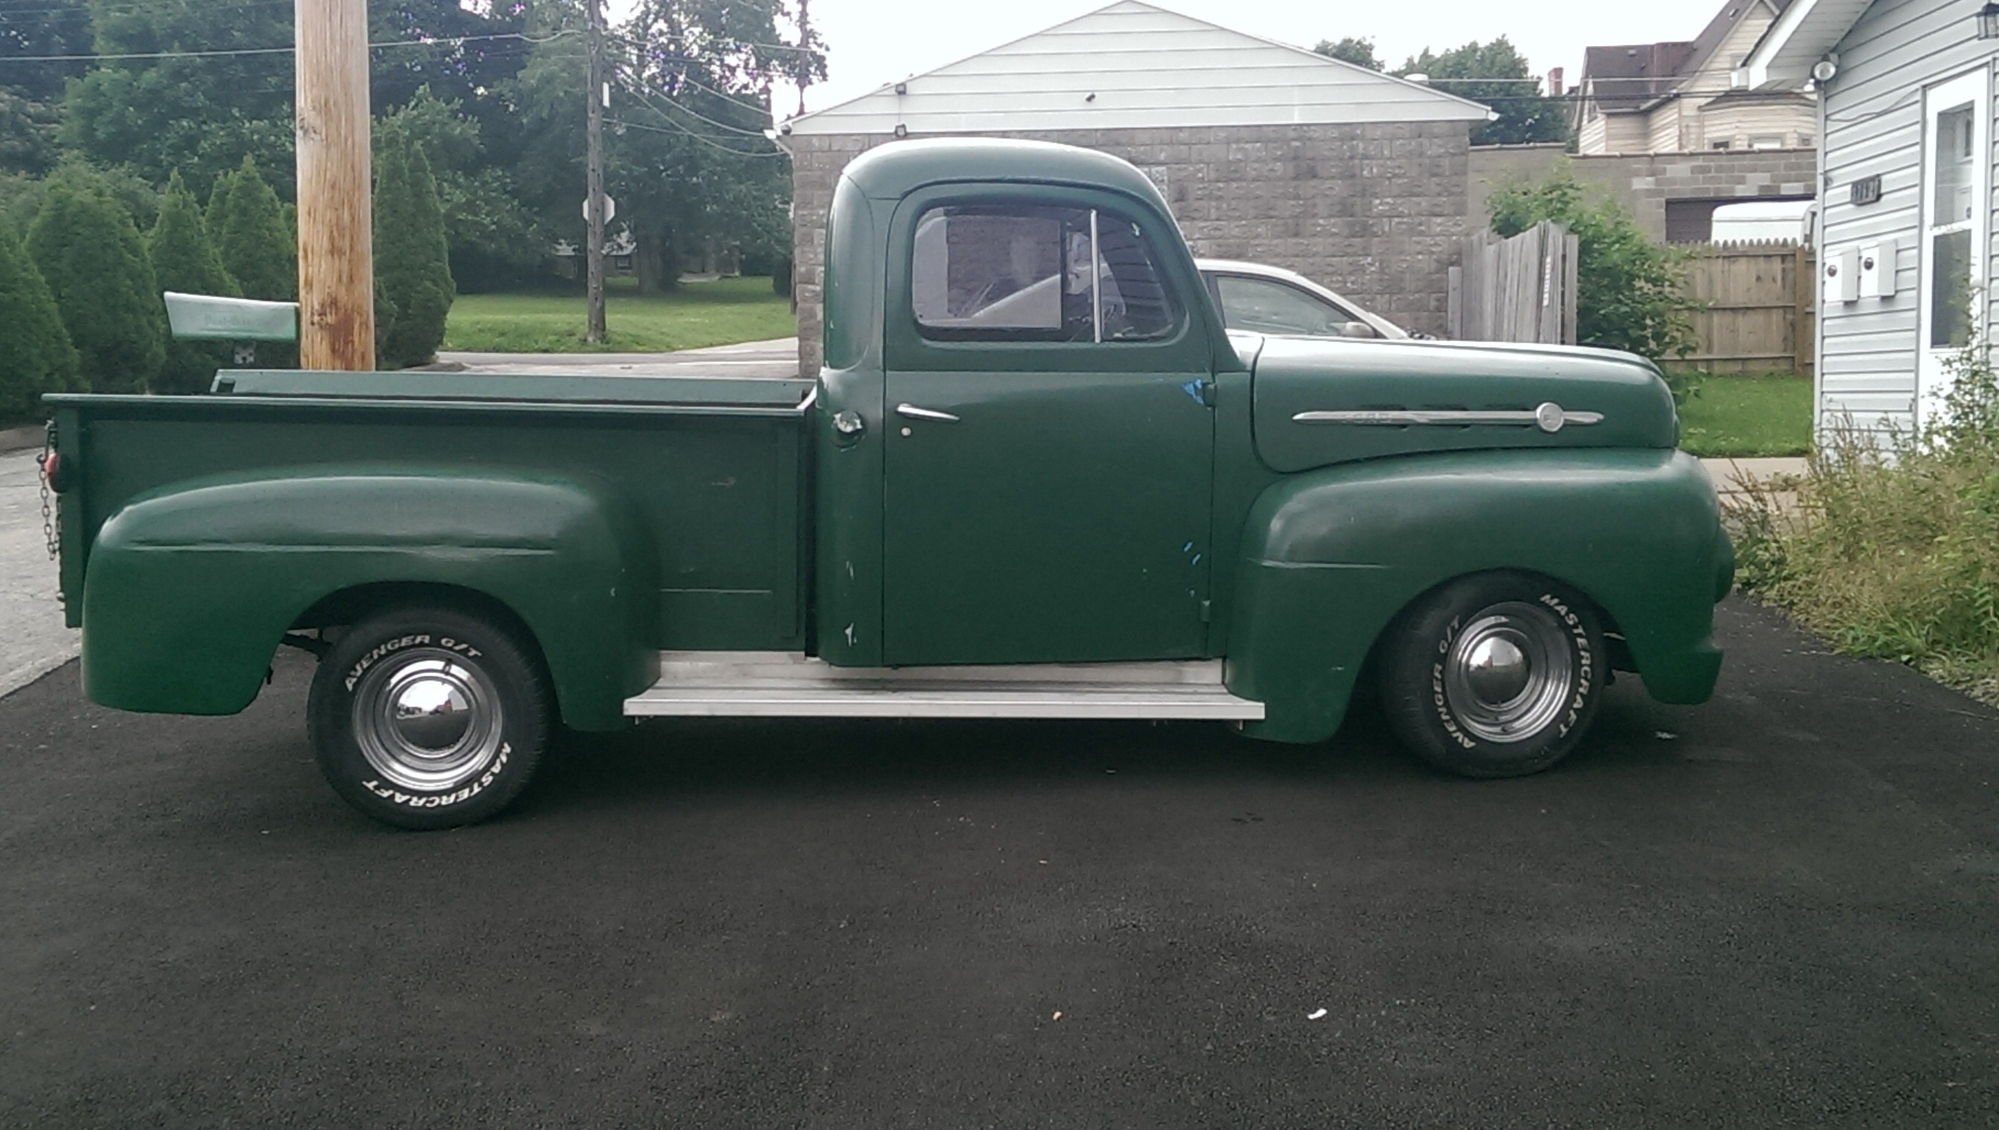 Trucks lowered but not low enough... - Ford Truck ...  Trucks lowered ...